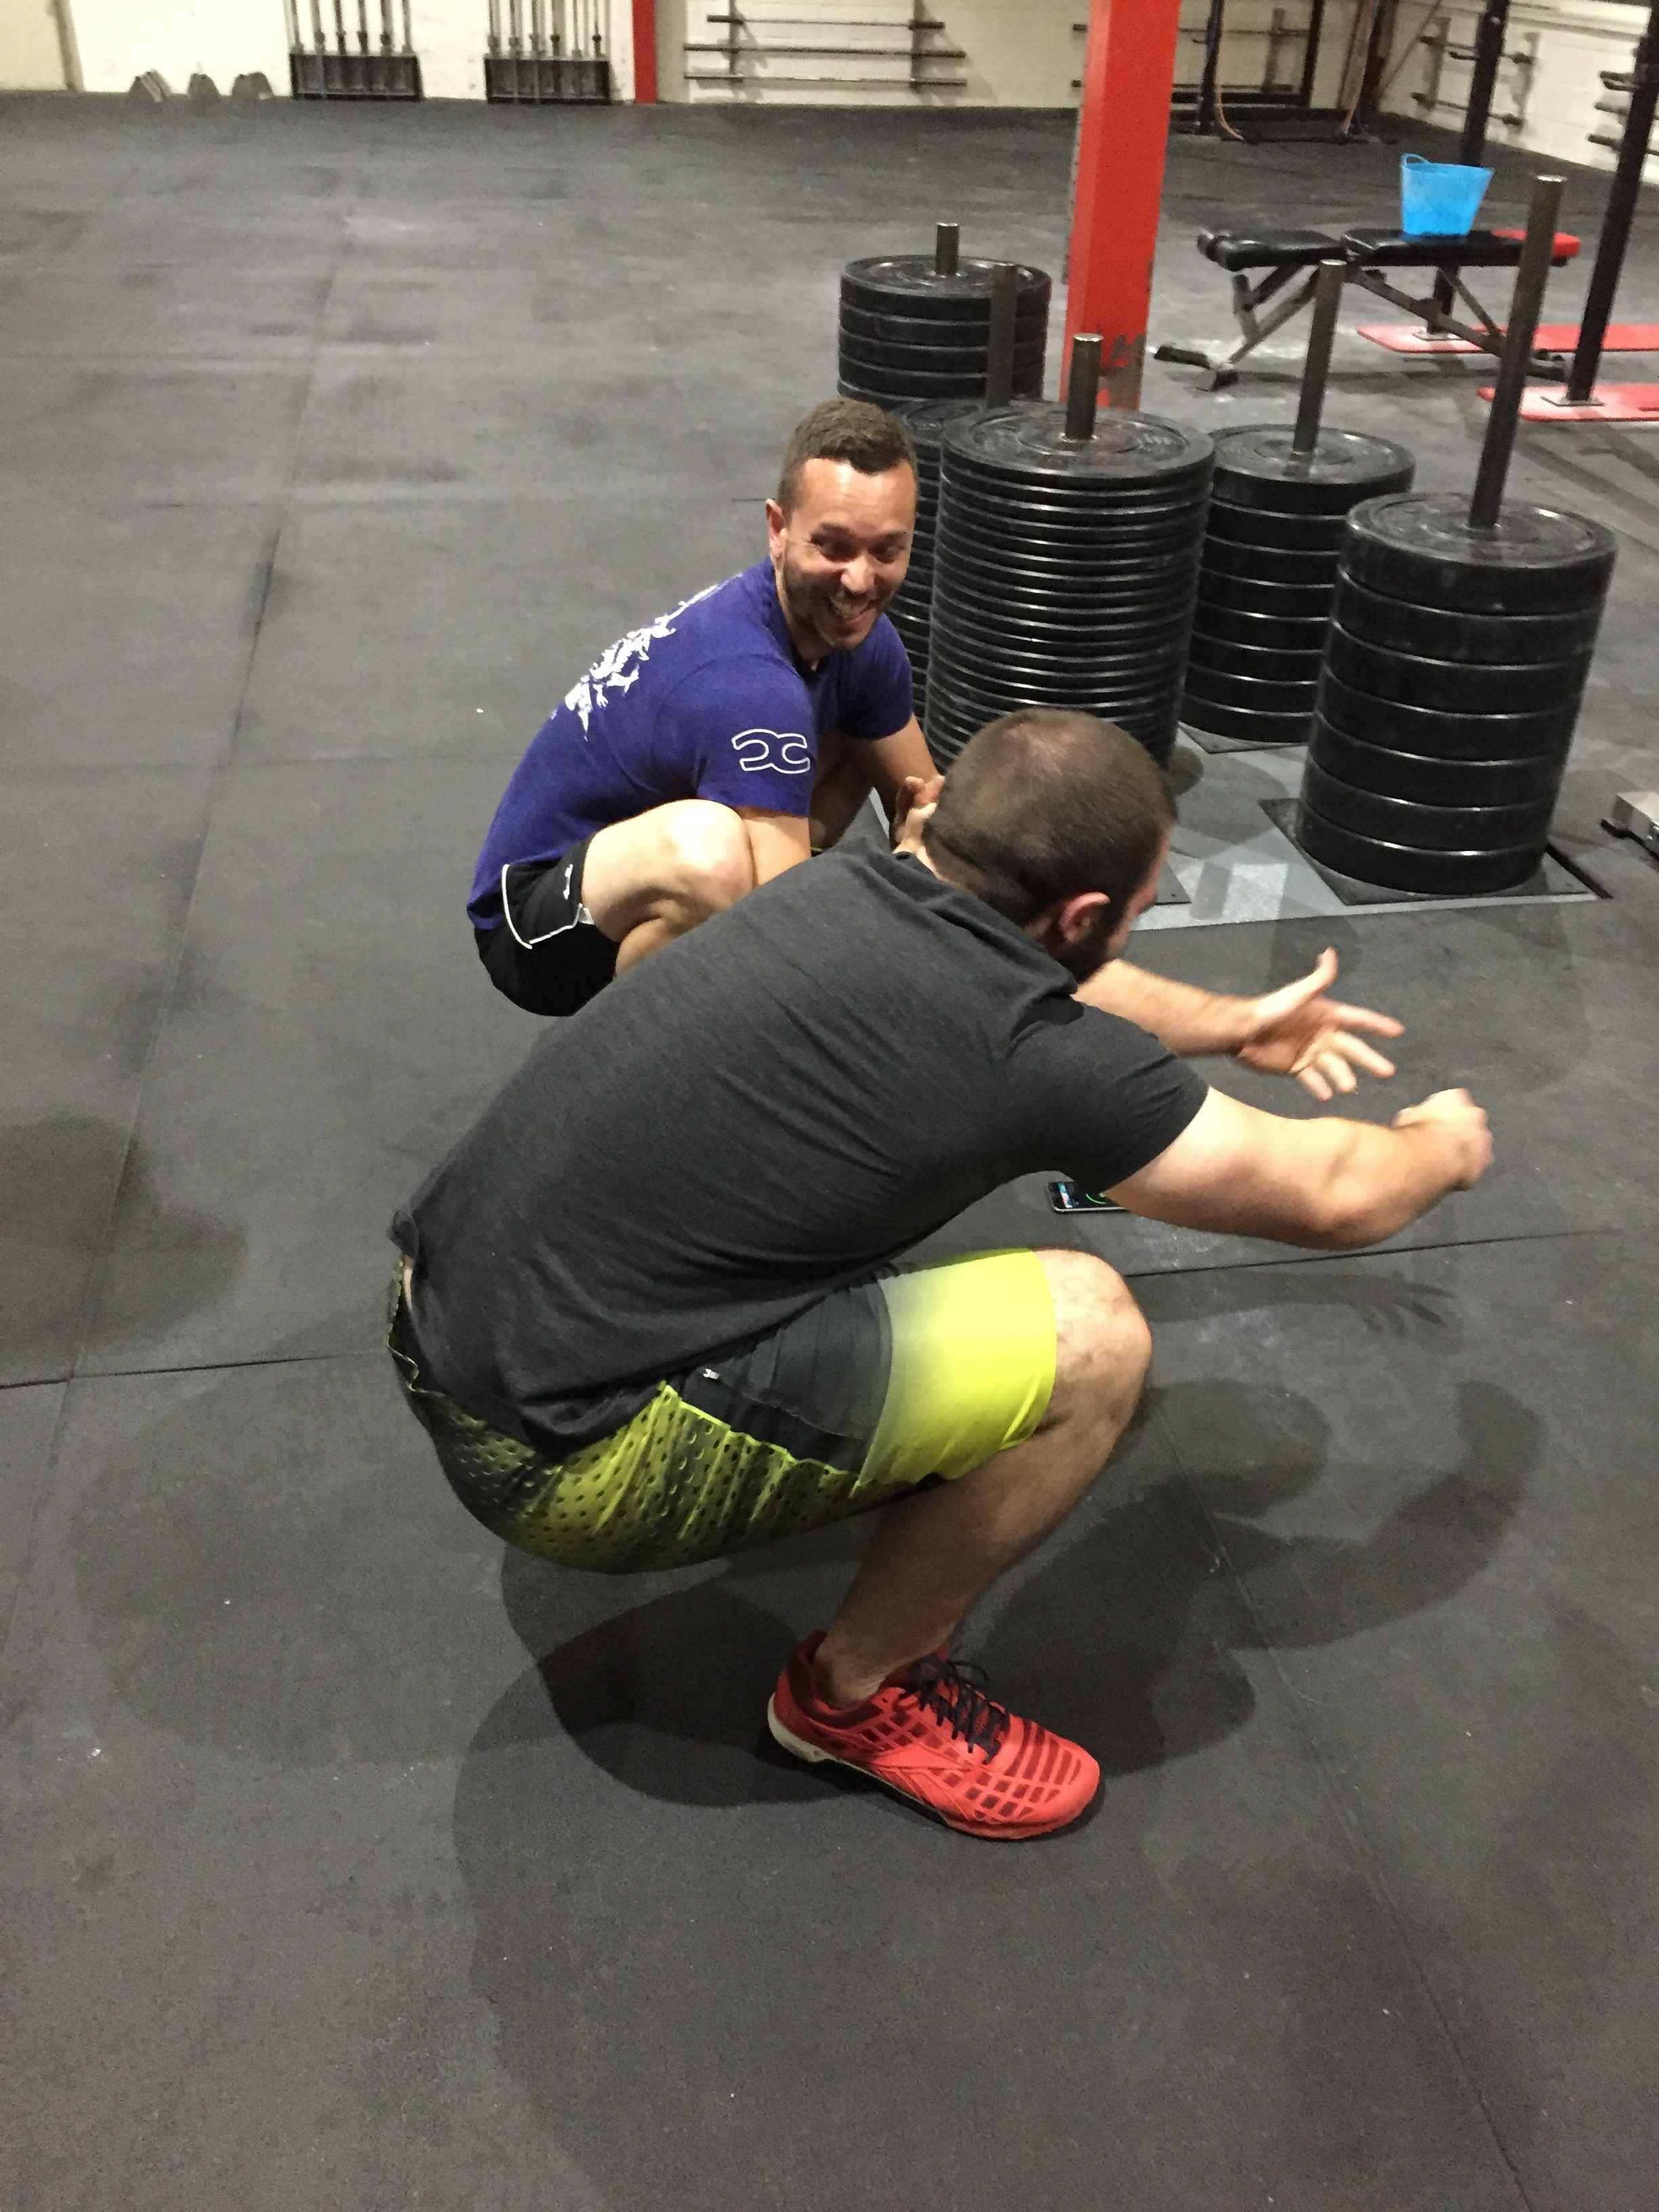 Week 1 of squat therapy